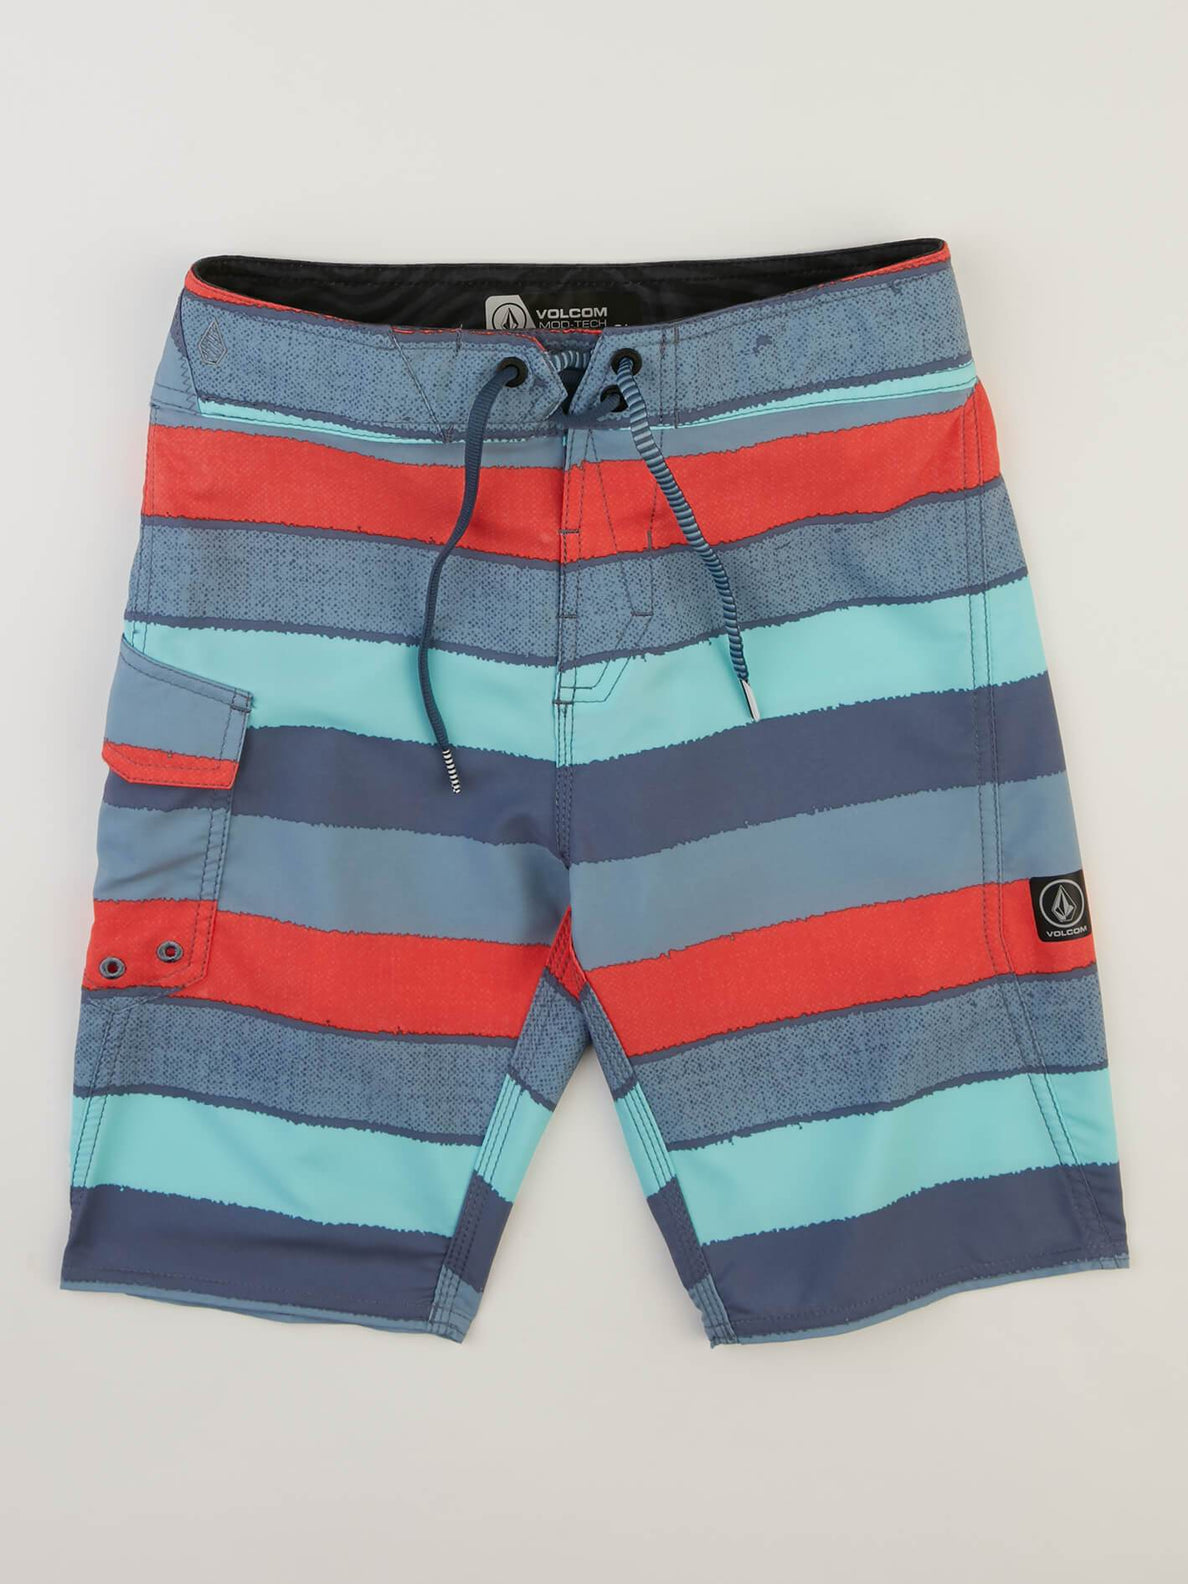 Big Boys Magnetic Liney Mod Boardshorts In Wrecked Indigo, Front View